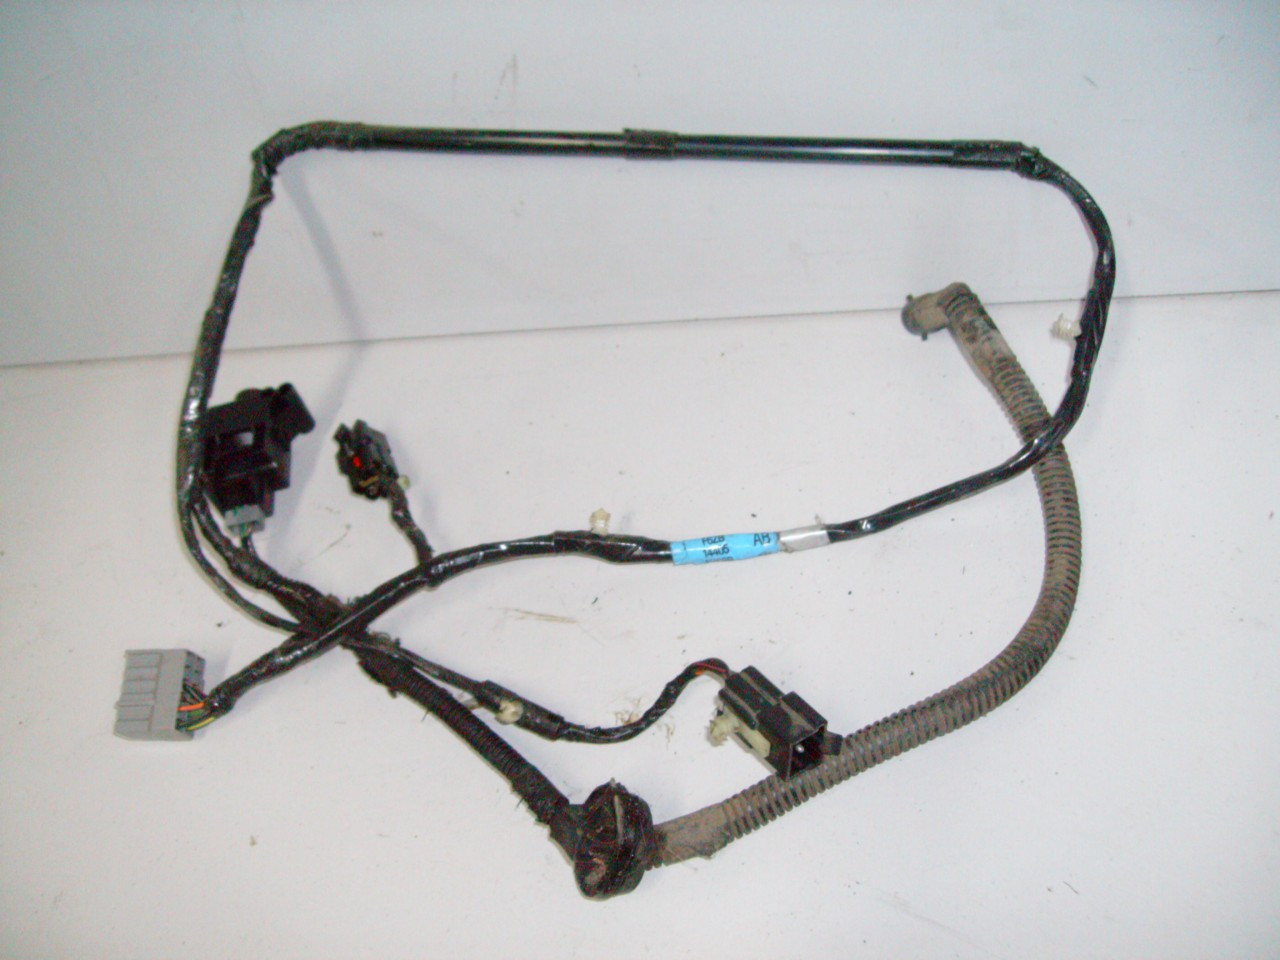 1995 ford mustang wiring harness ford auto wiring diagram 1991 mustang wire harness 1998 3 8 mustang wire harness #14